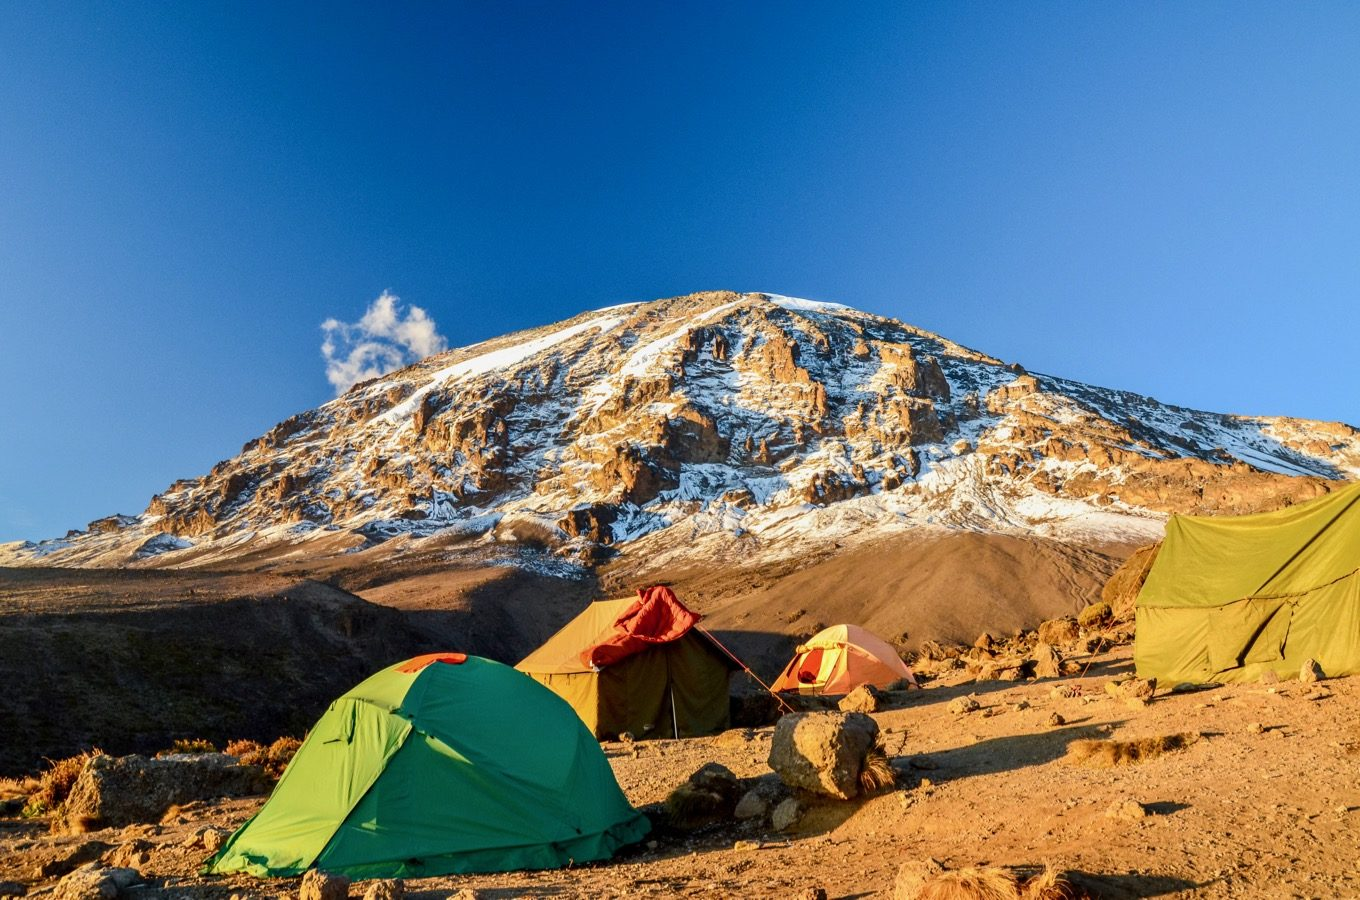 View of Kilimanjaro from a camp with tents